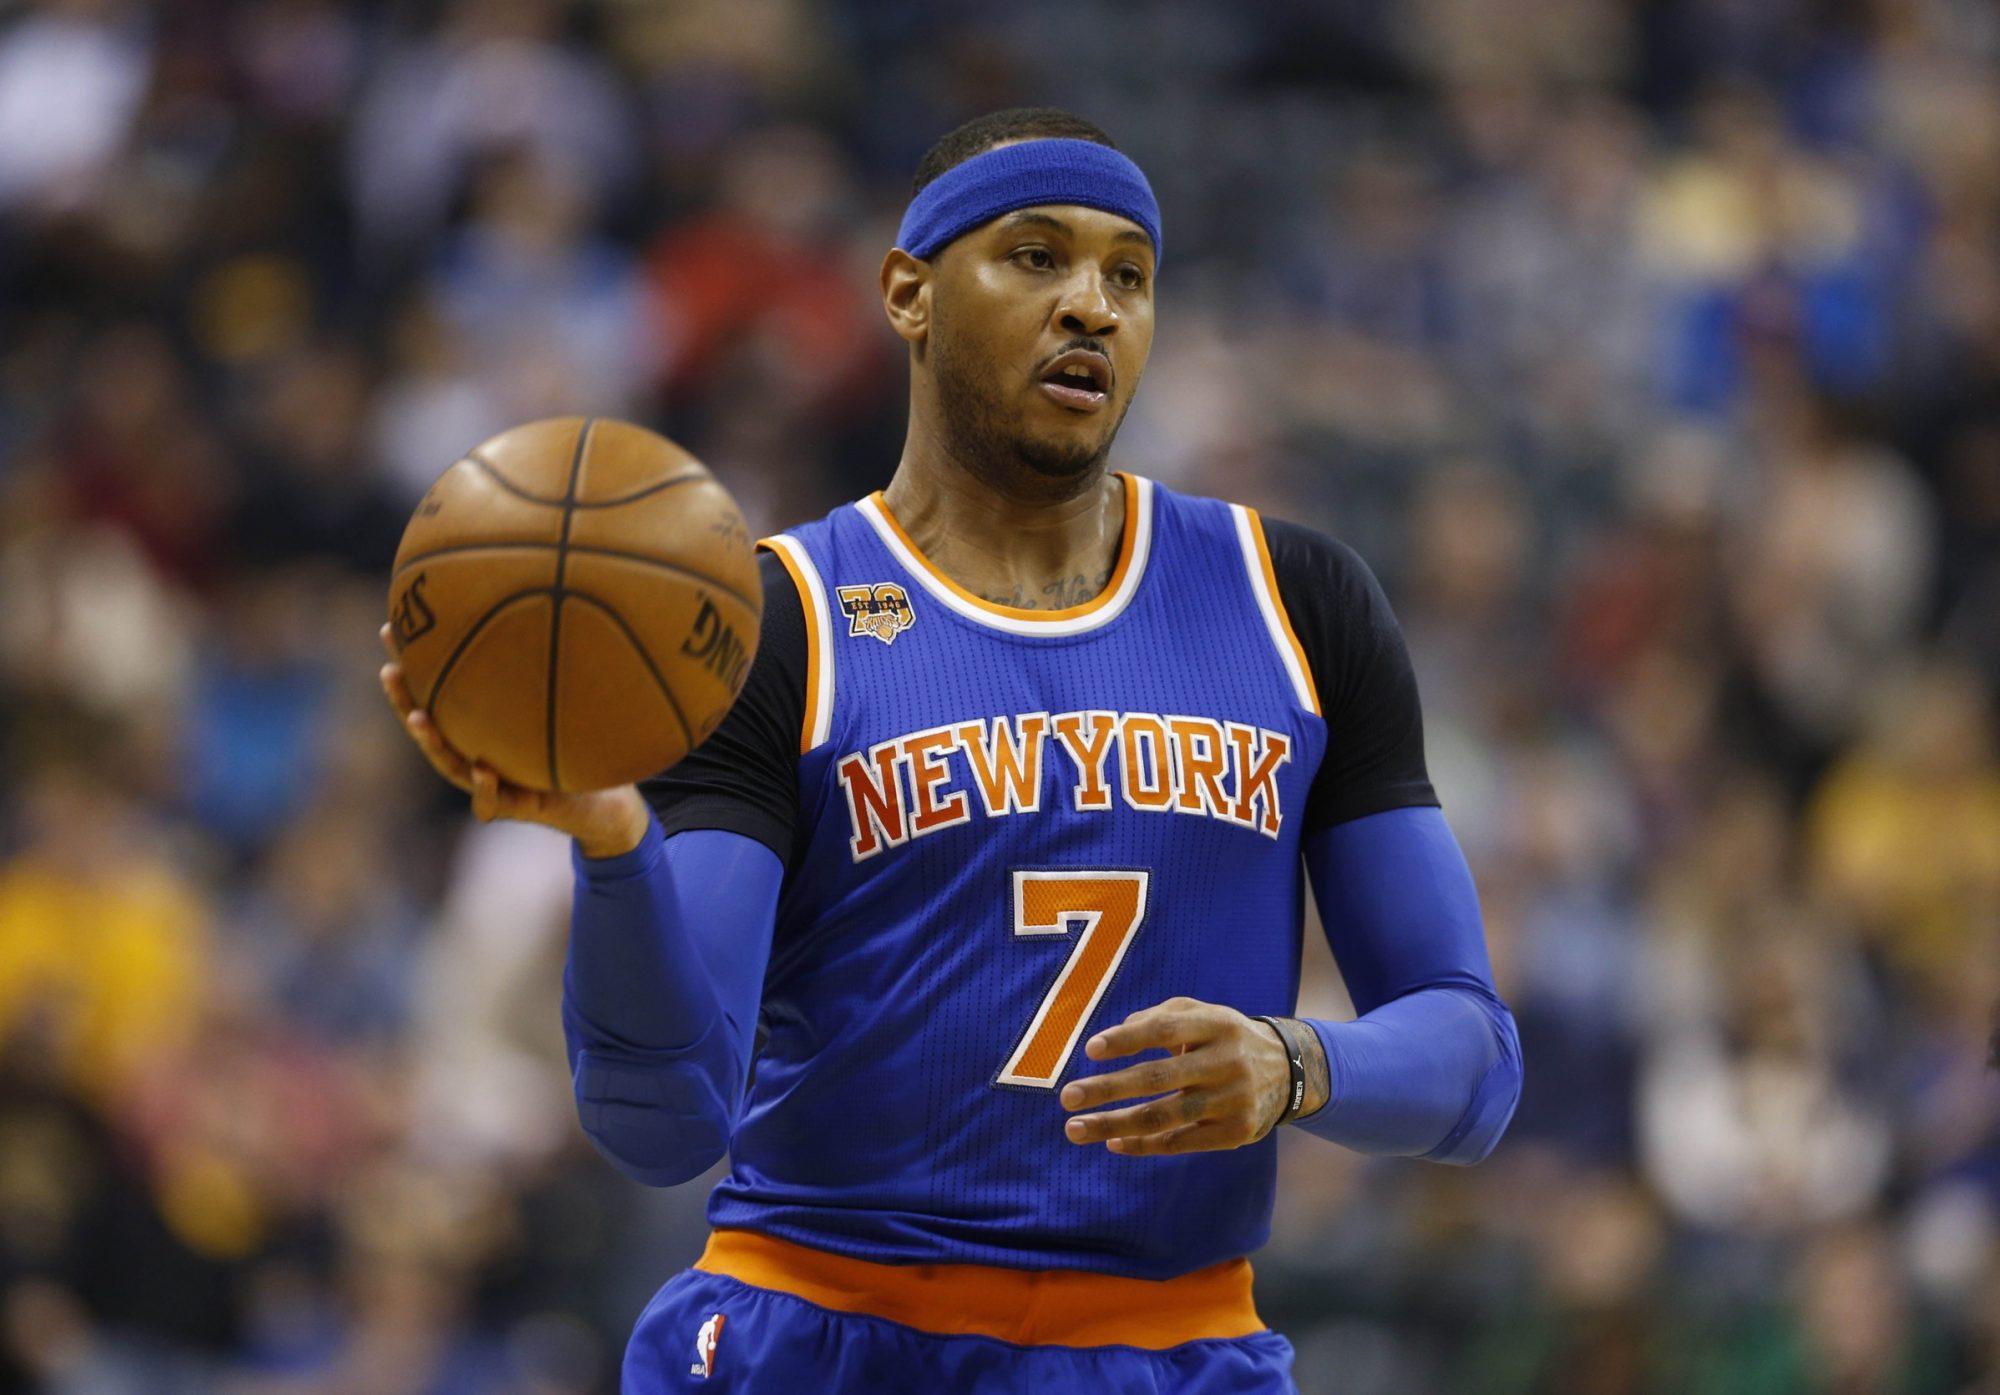 New York Knicks News Mix, 7/14/17: Melo Frustrated, Perry 5-Year Deal